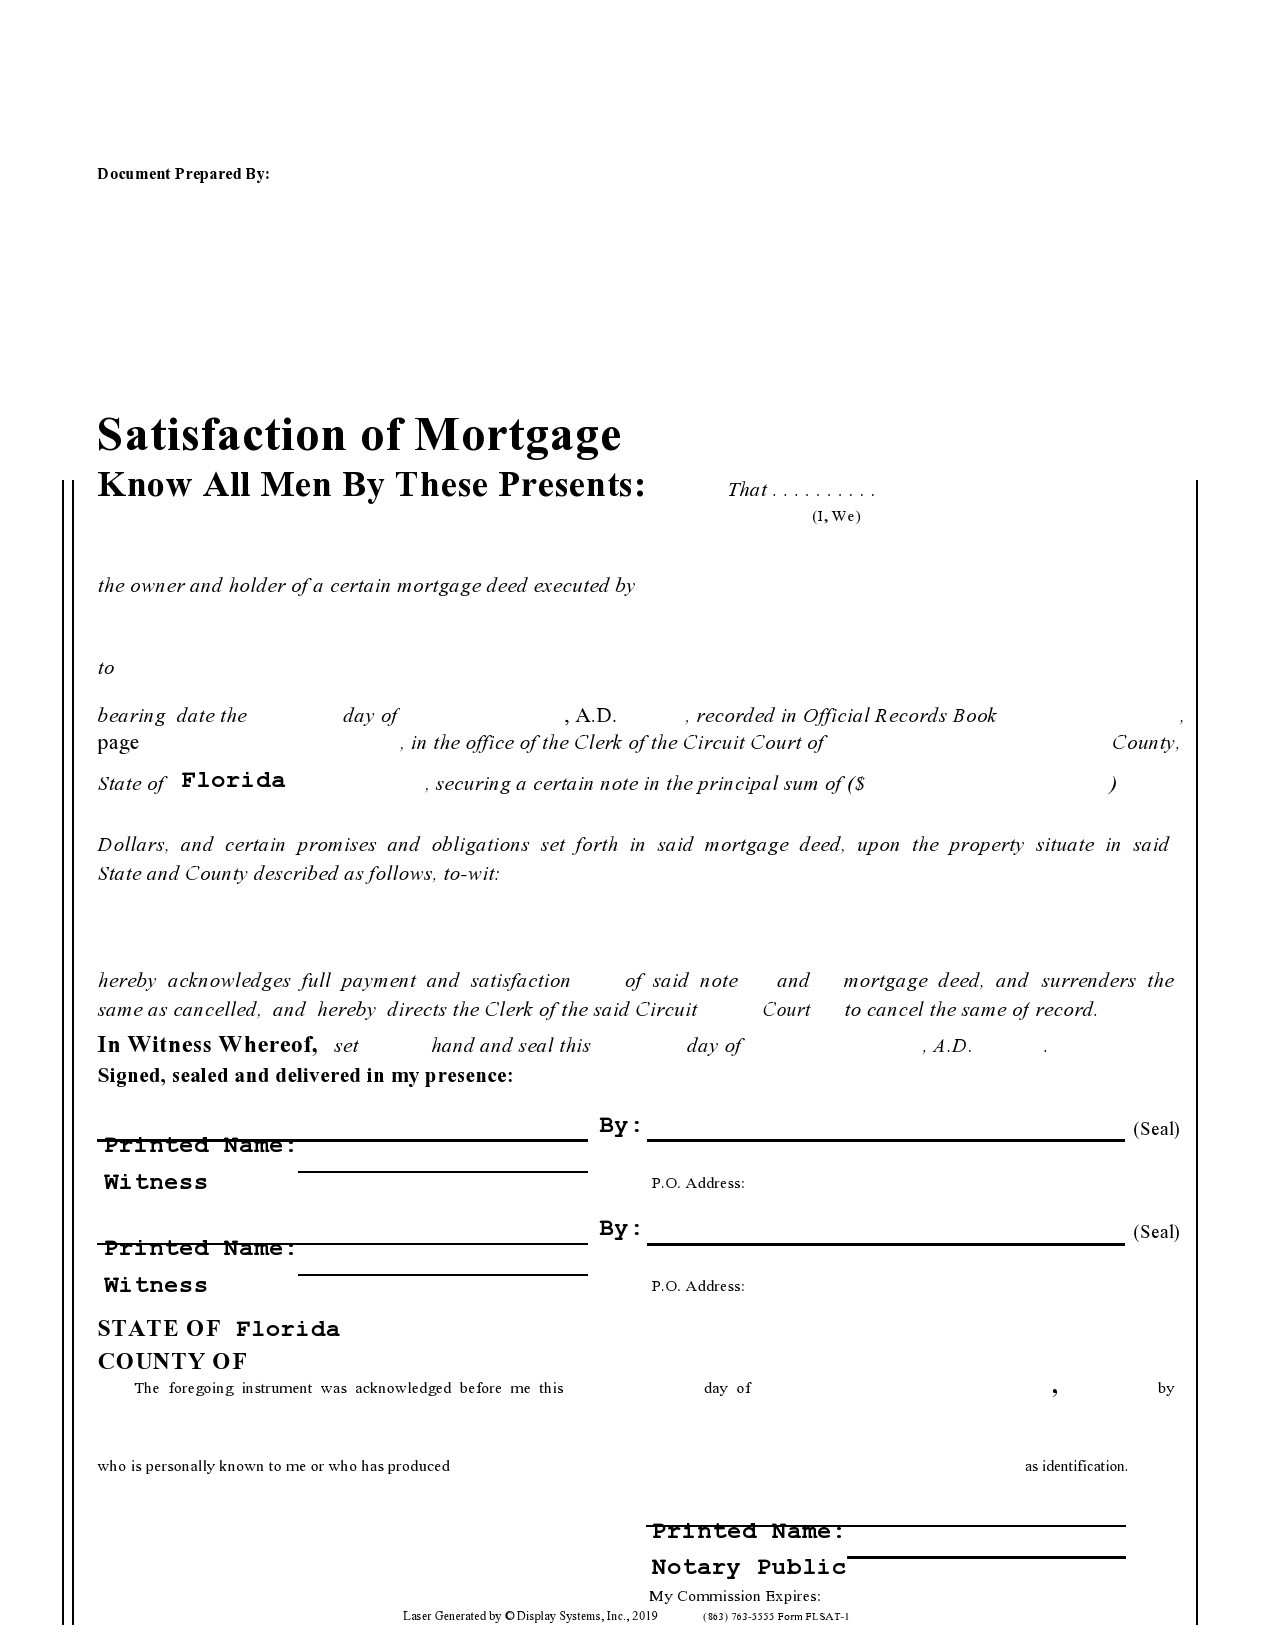 Free satisfaction of mortgage 22